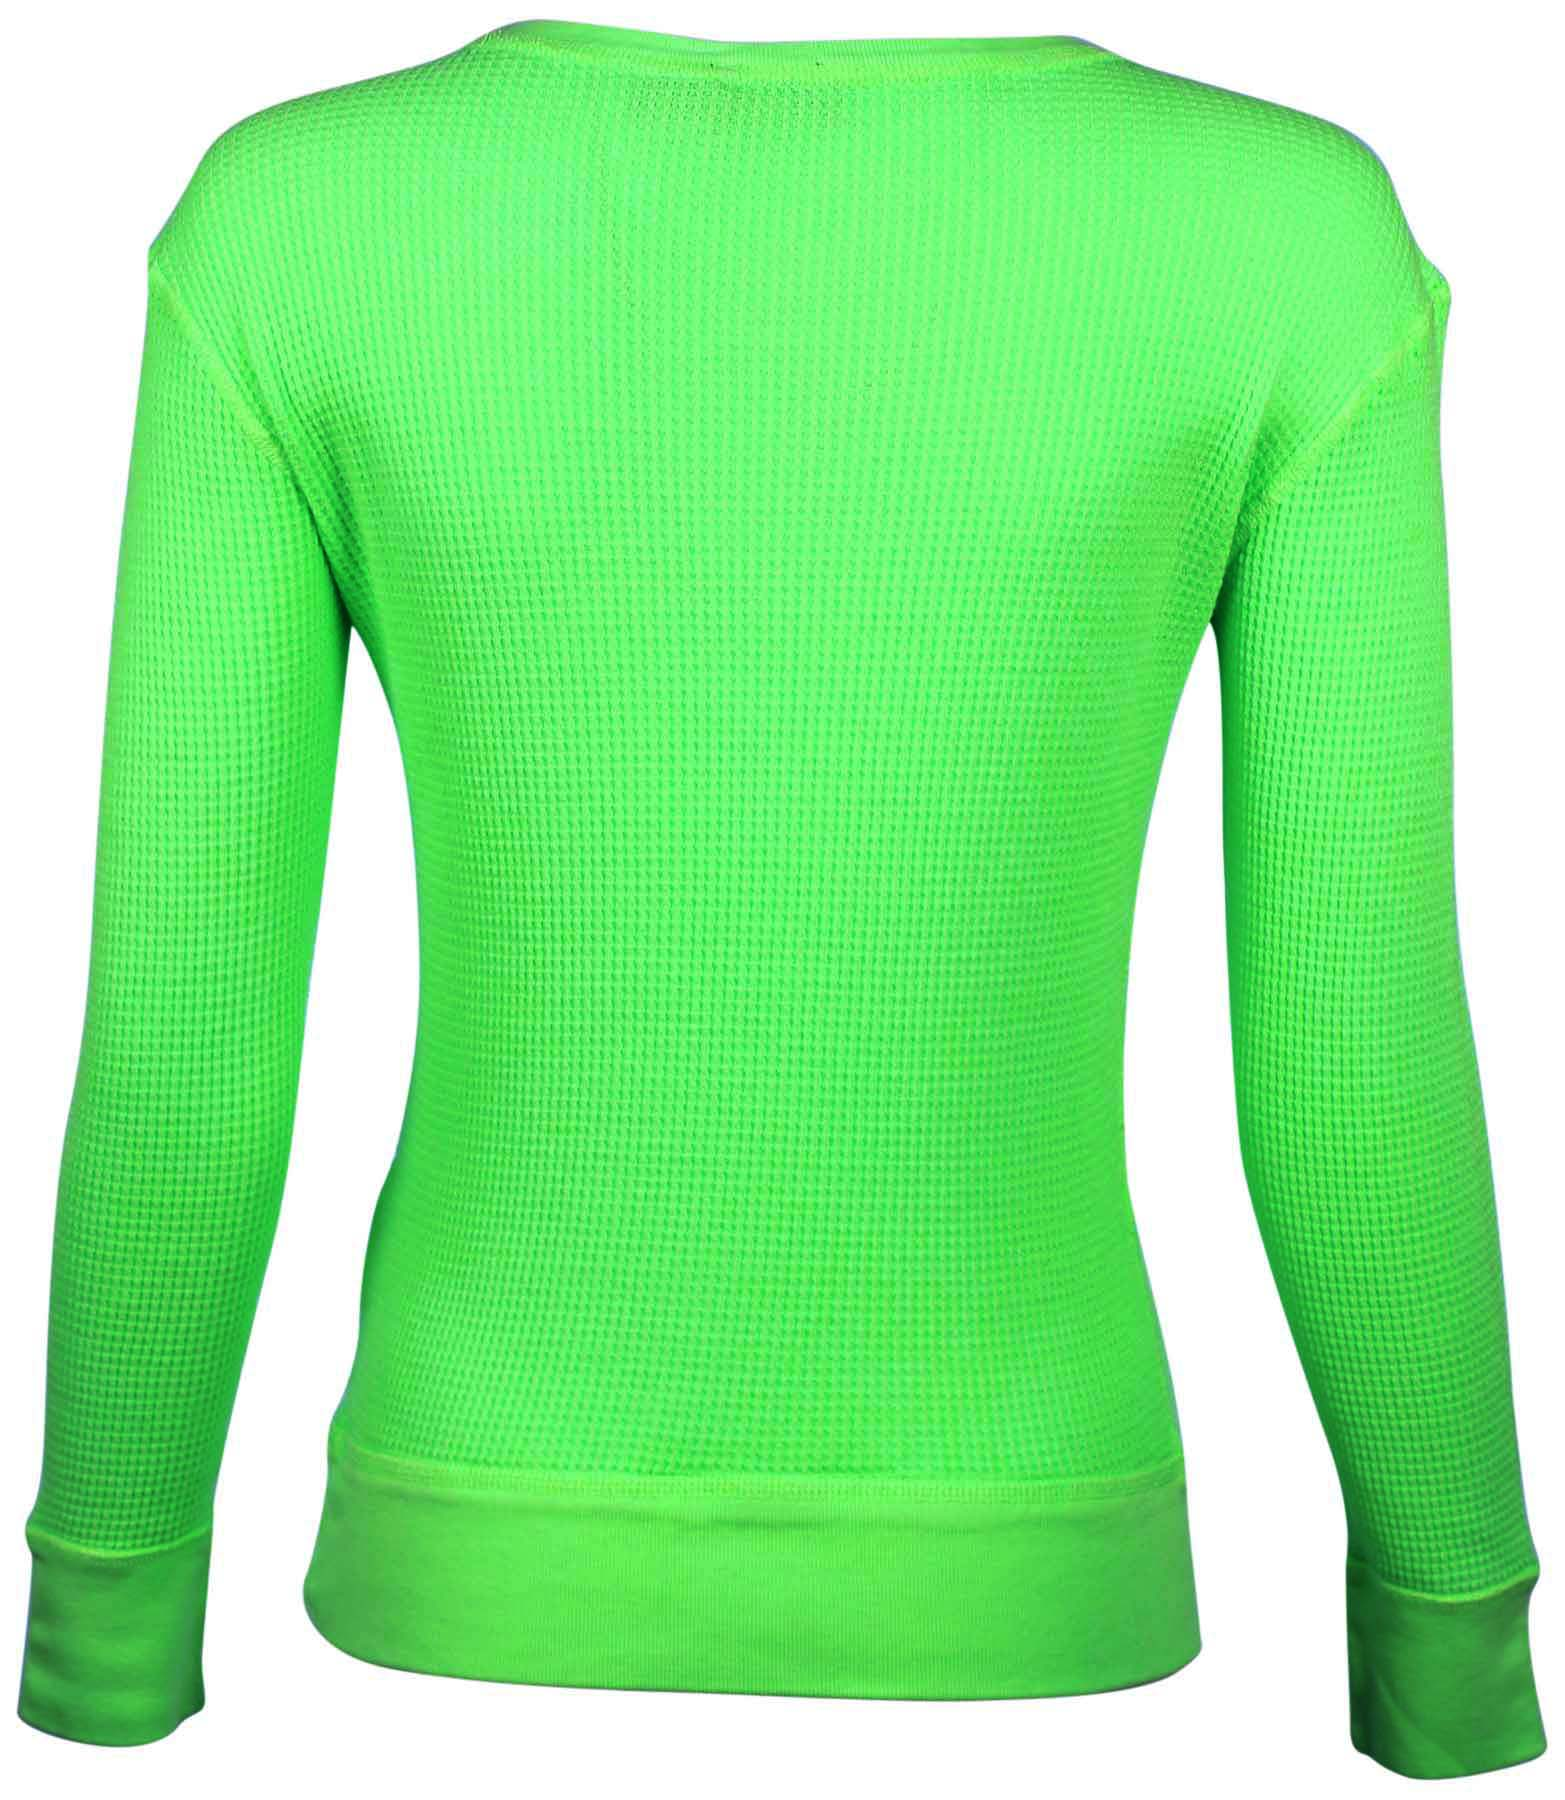 polo ralph lauren women 39 s long sleeve thermal shirt ebay